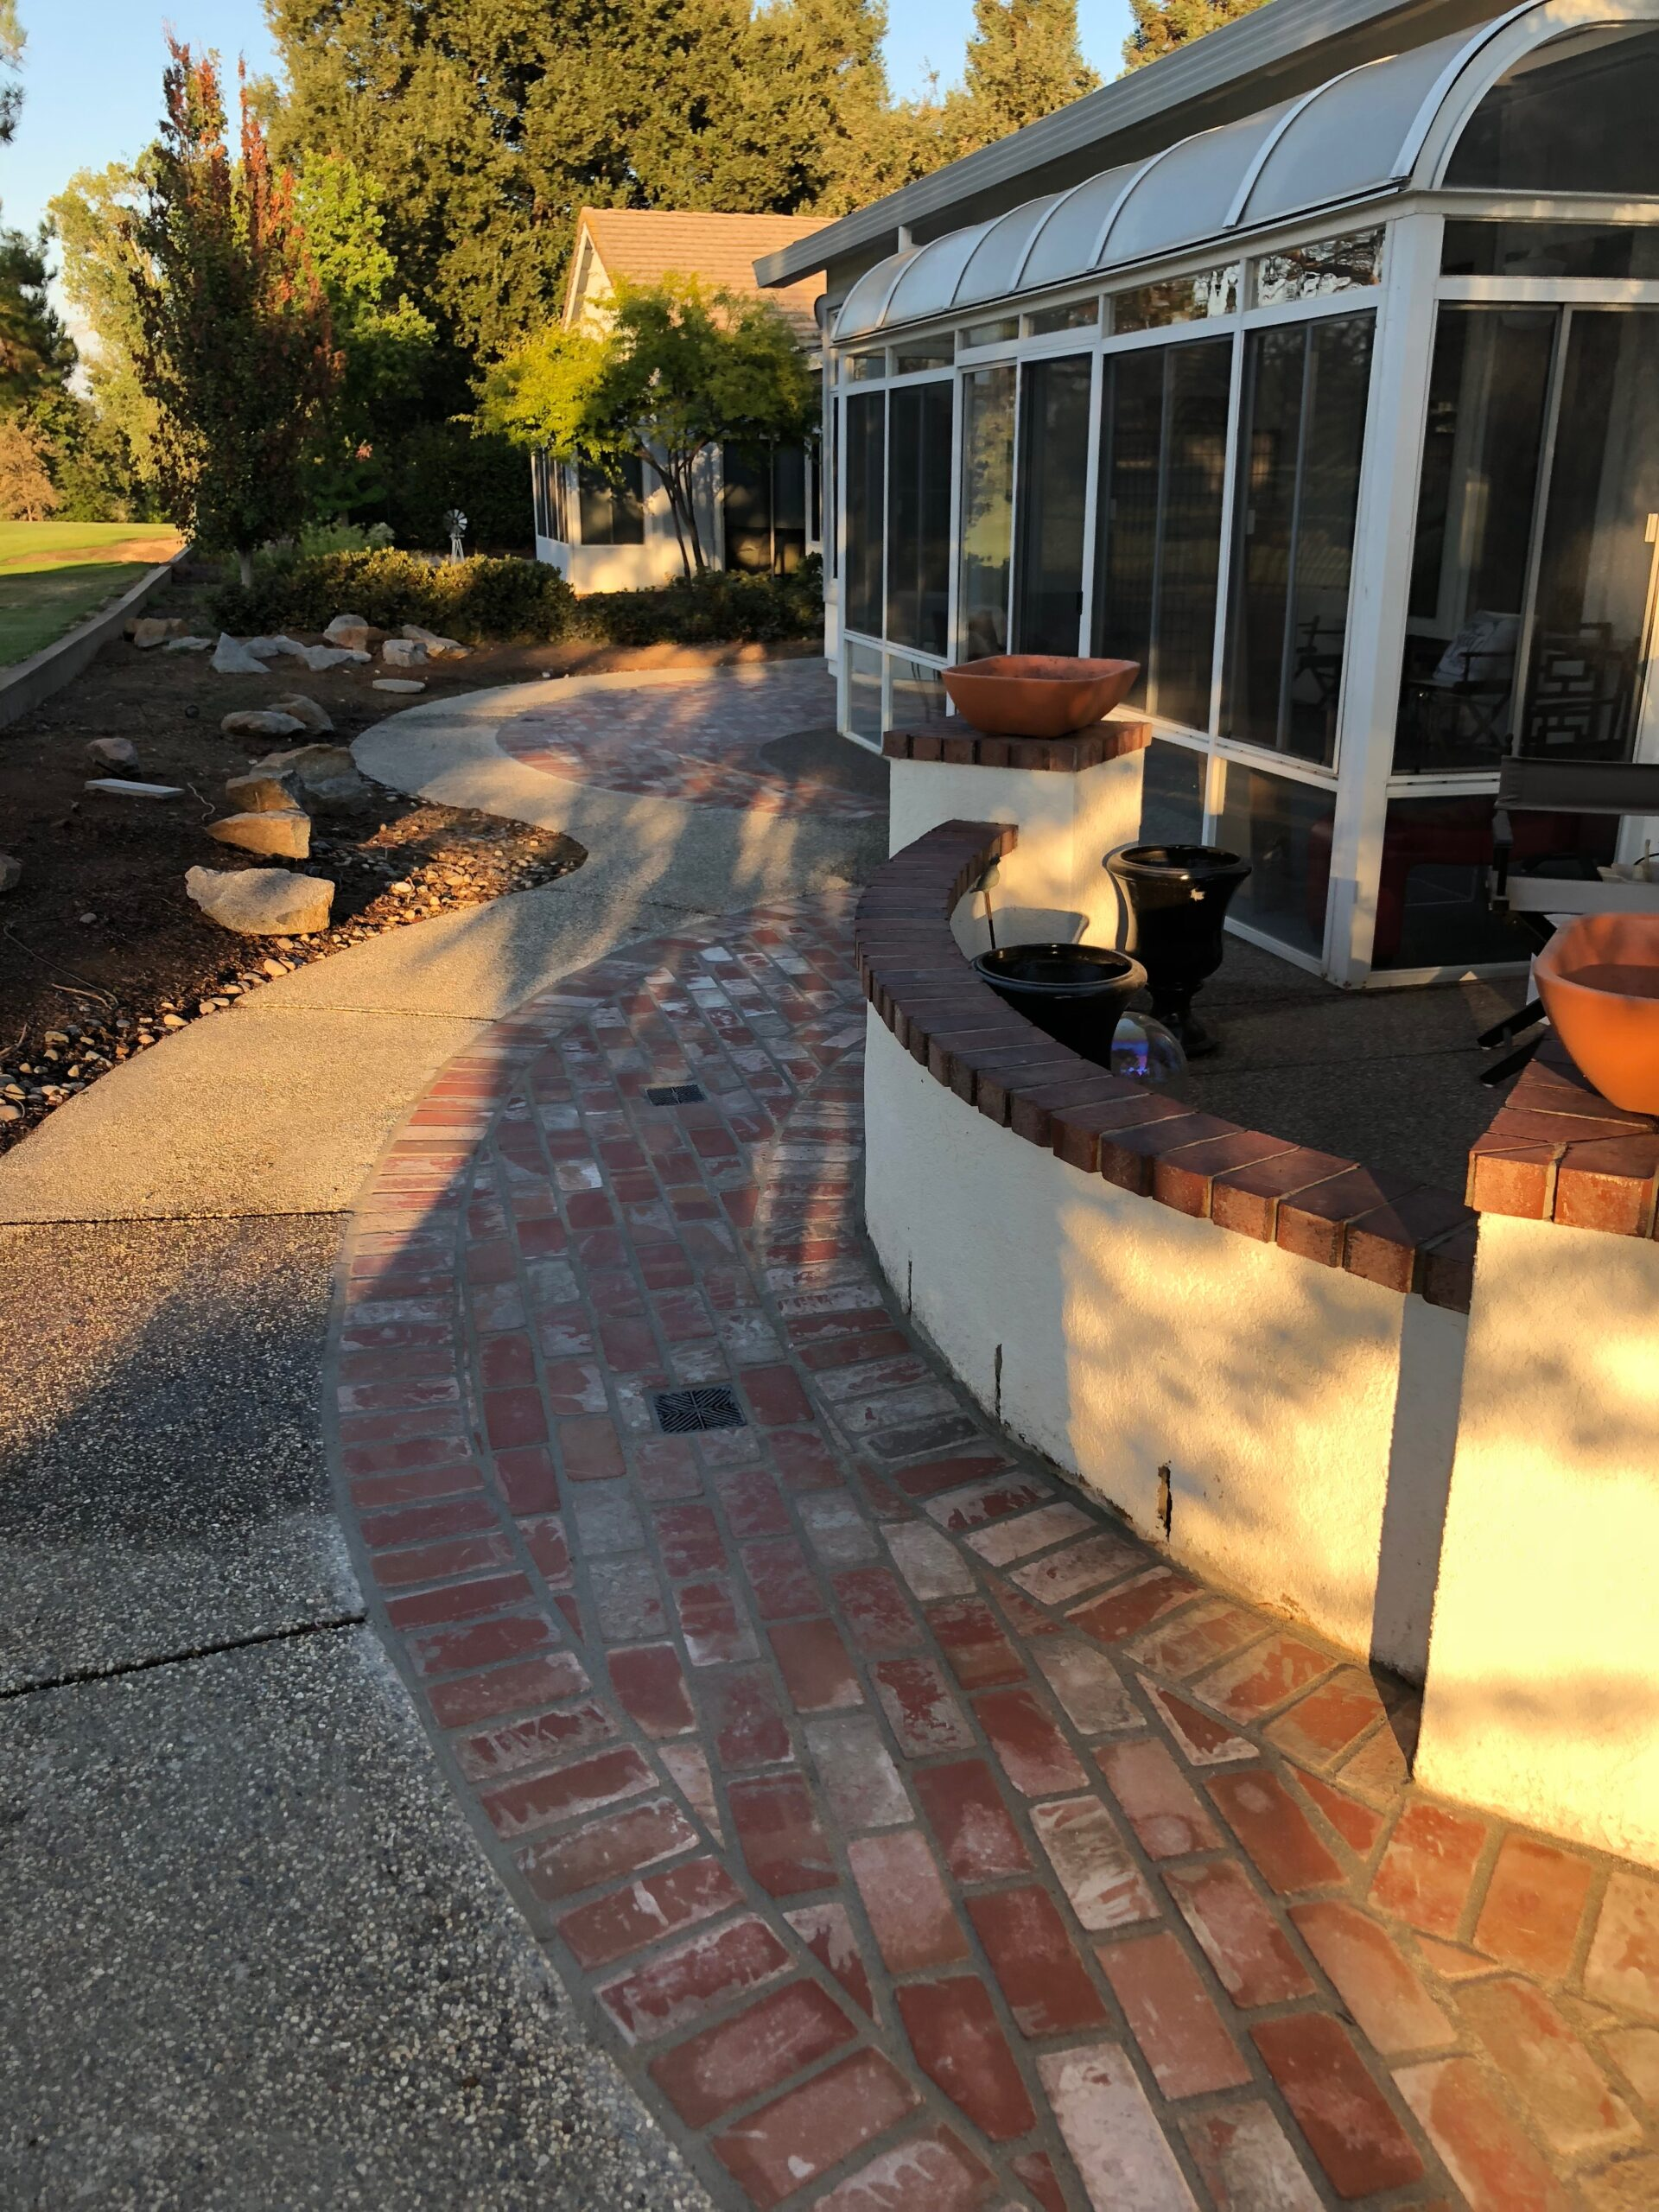 An image of finished concrete work in Laguna Niguel.